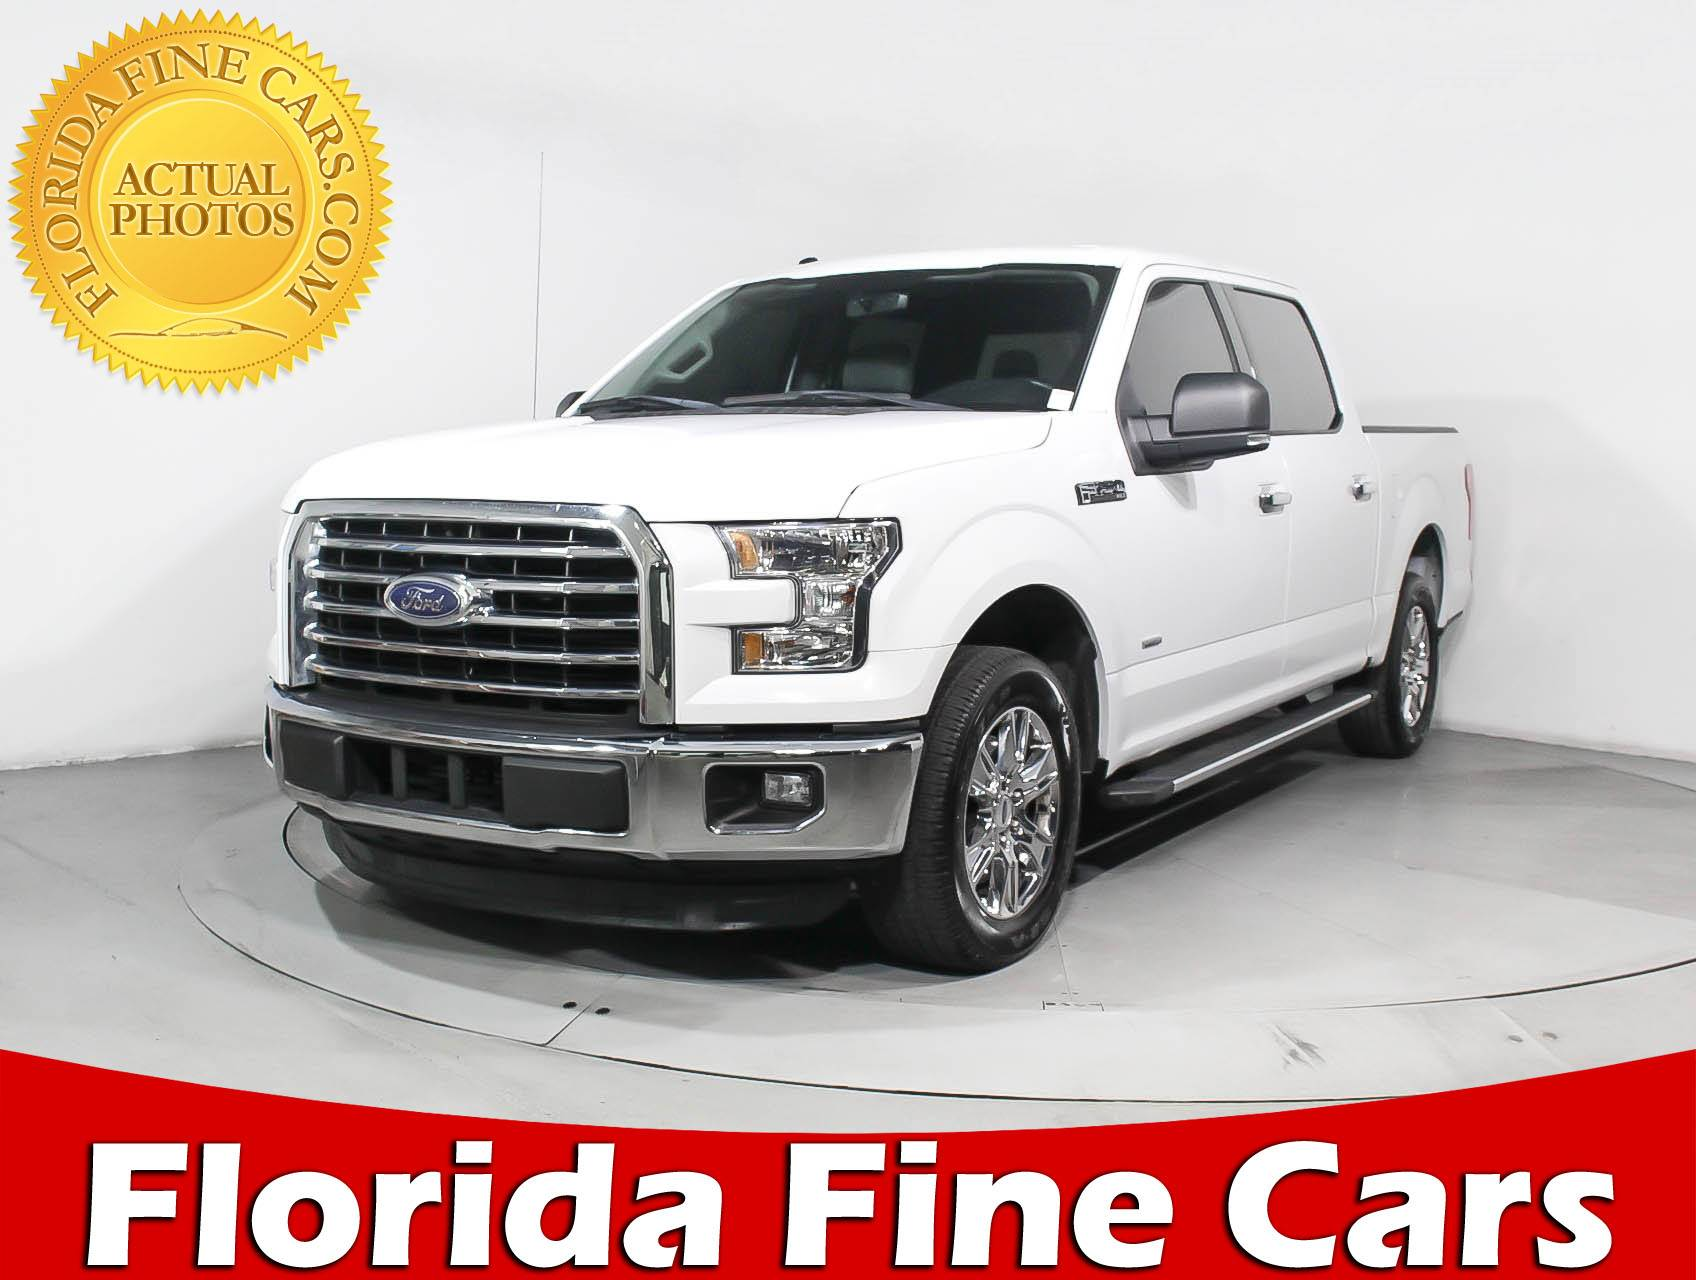 Used 2015 FORD F 150 Crew Cab Xlt Truck for sale in MIAMI FL